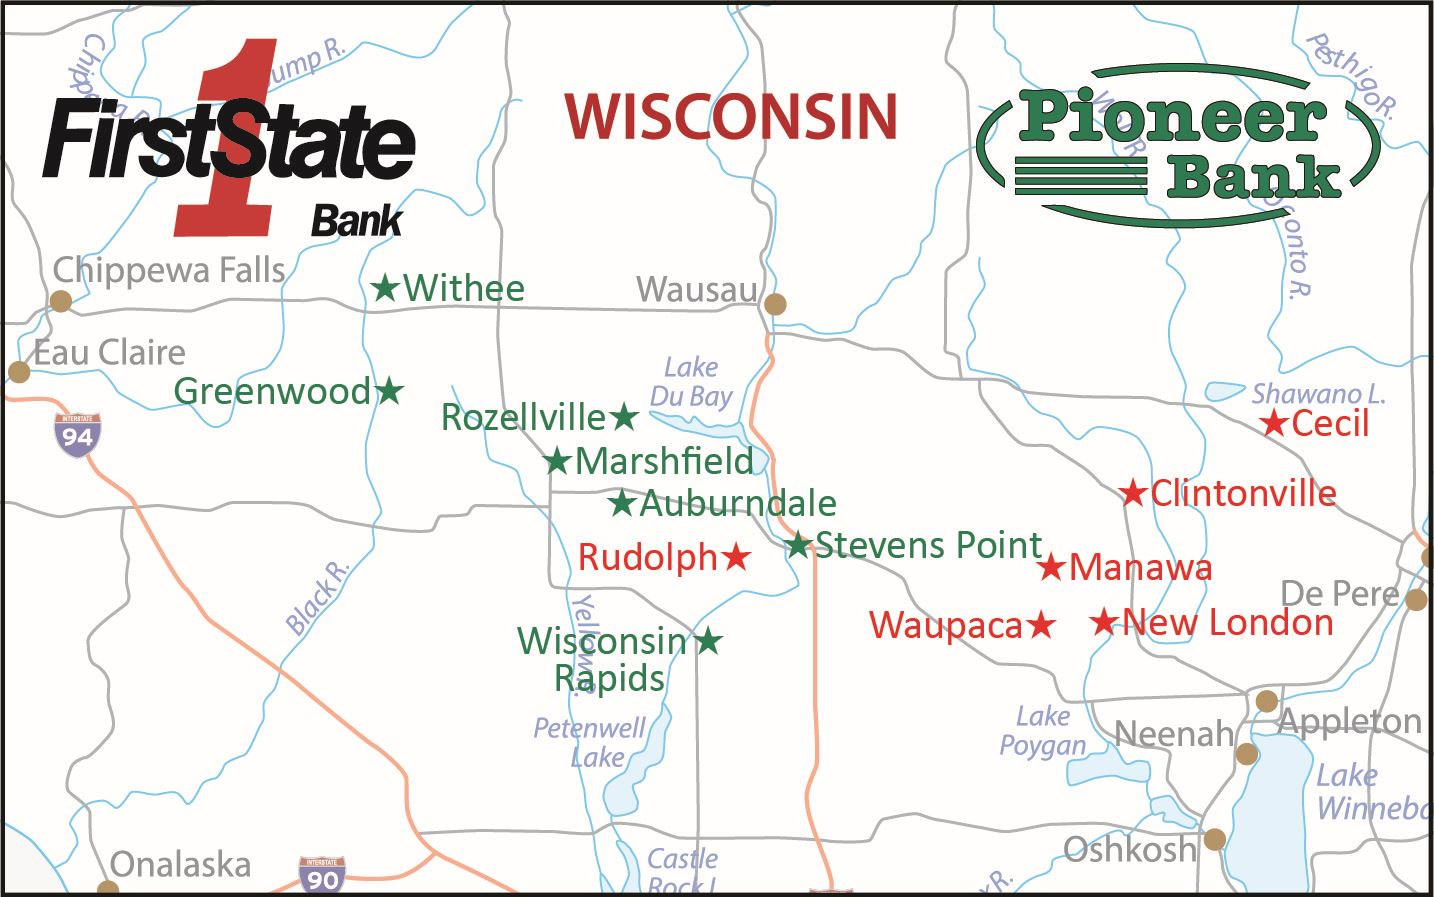 Map showing locations of First State Bank and Pioneer Bank offices